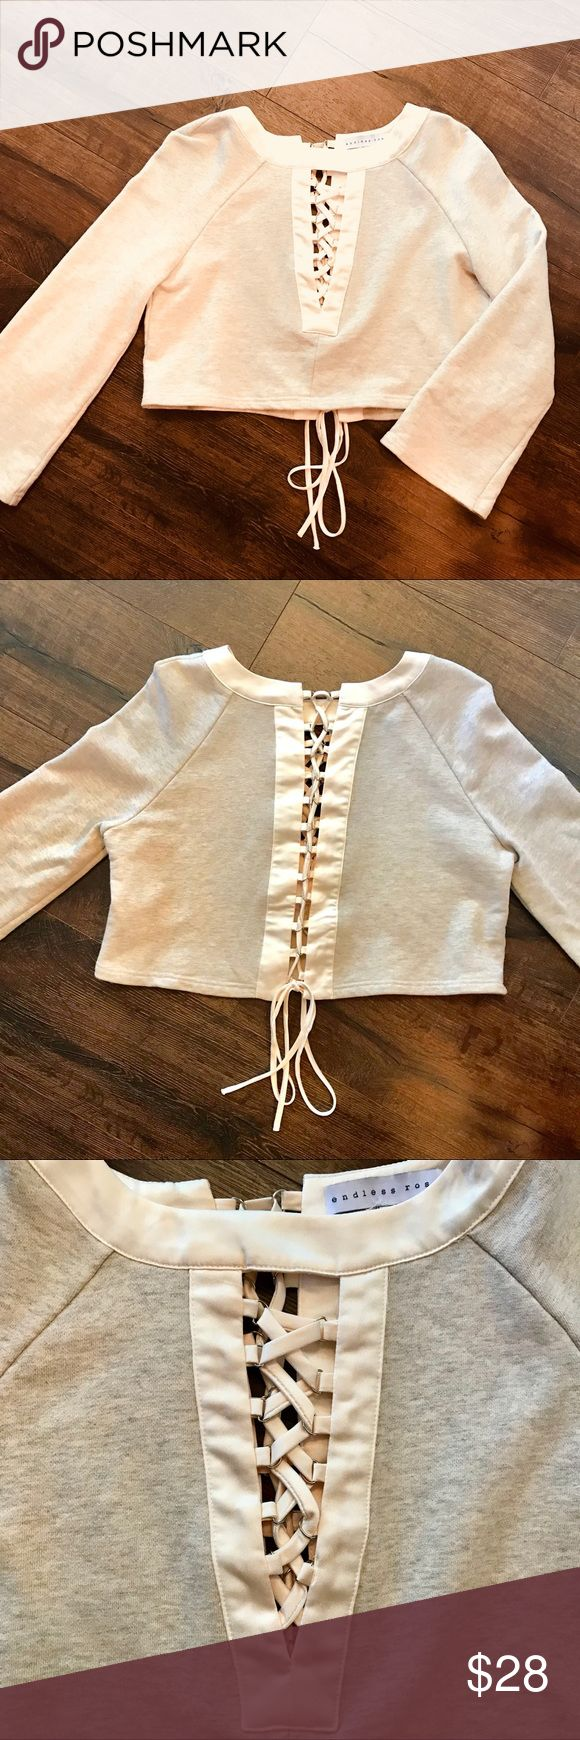 Grey & Cream Crop Top sweater The Grey & Cream Crop Top Sweater features a shiny cream crisscross detailing down the center of the sweater with grey long sleeves. The bow tie at the end of the crop is adjustable! Great condition! Endless Rose Tops Crop Tops